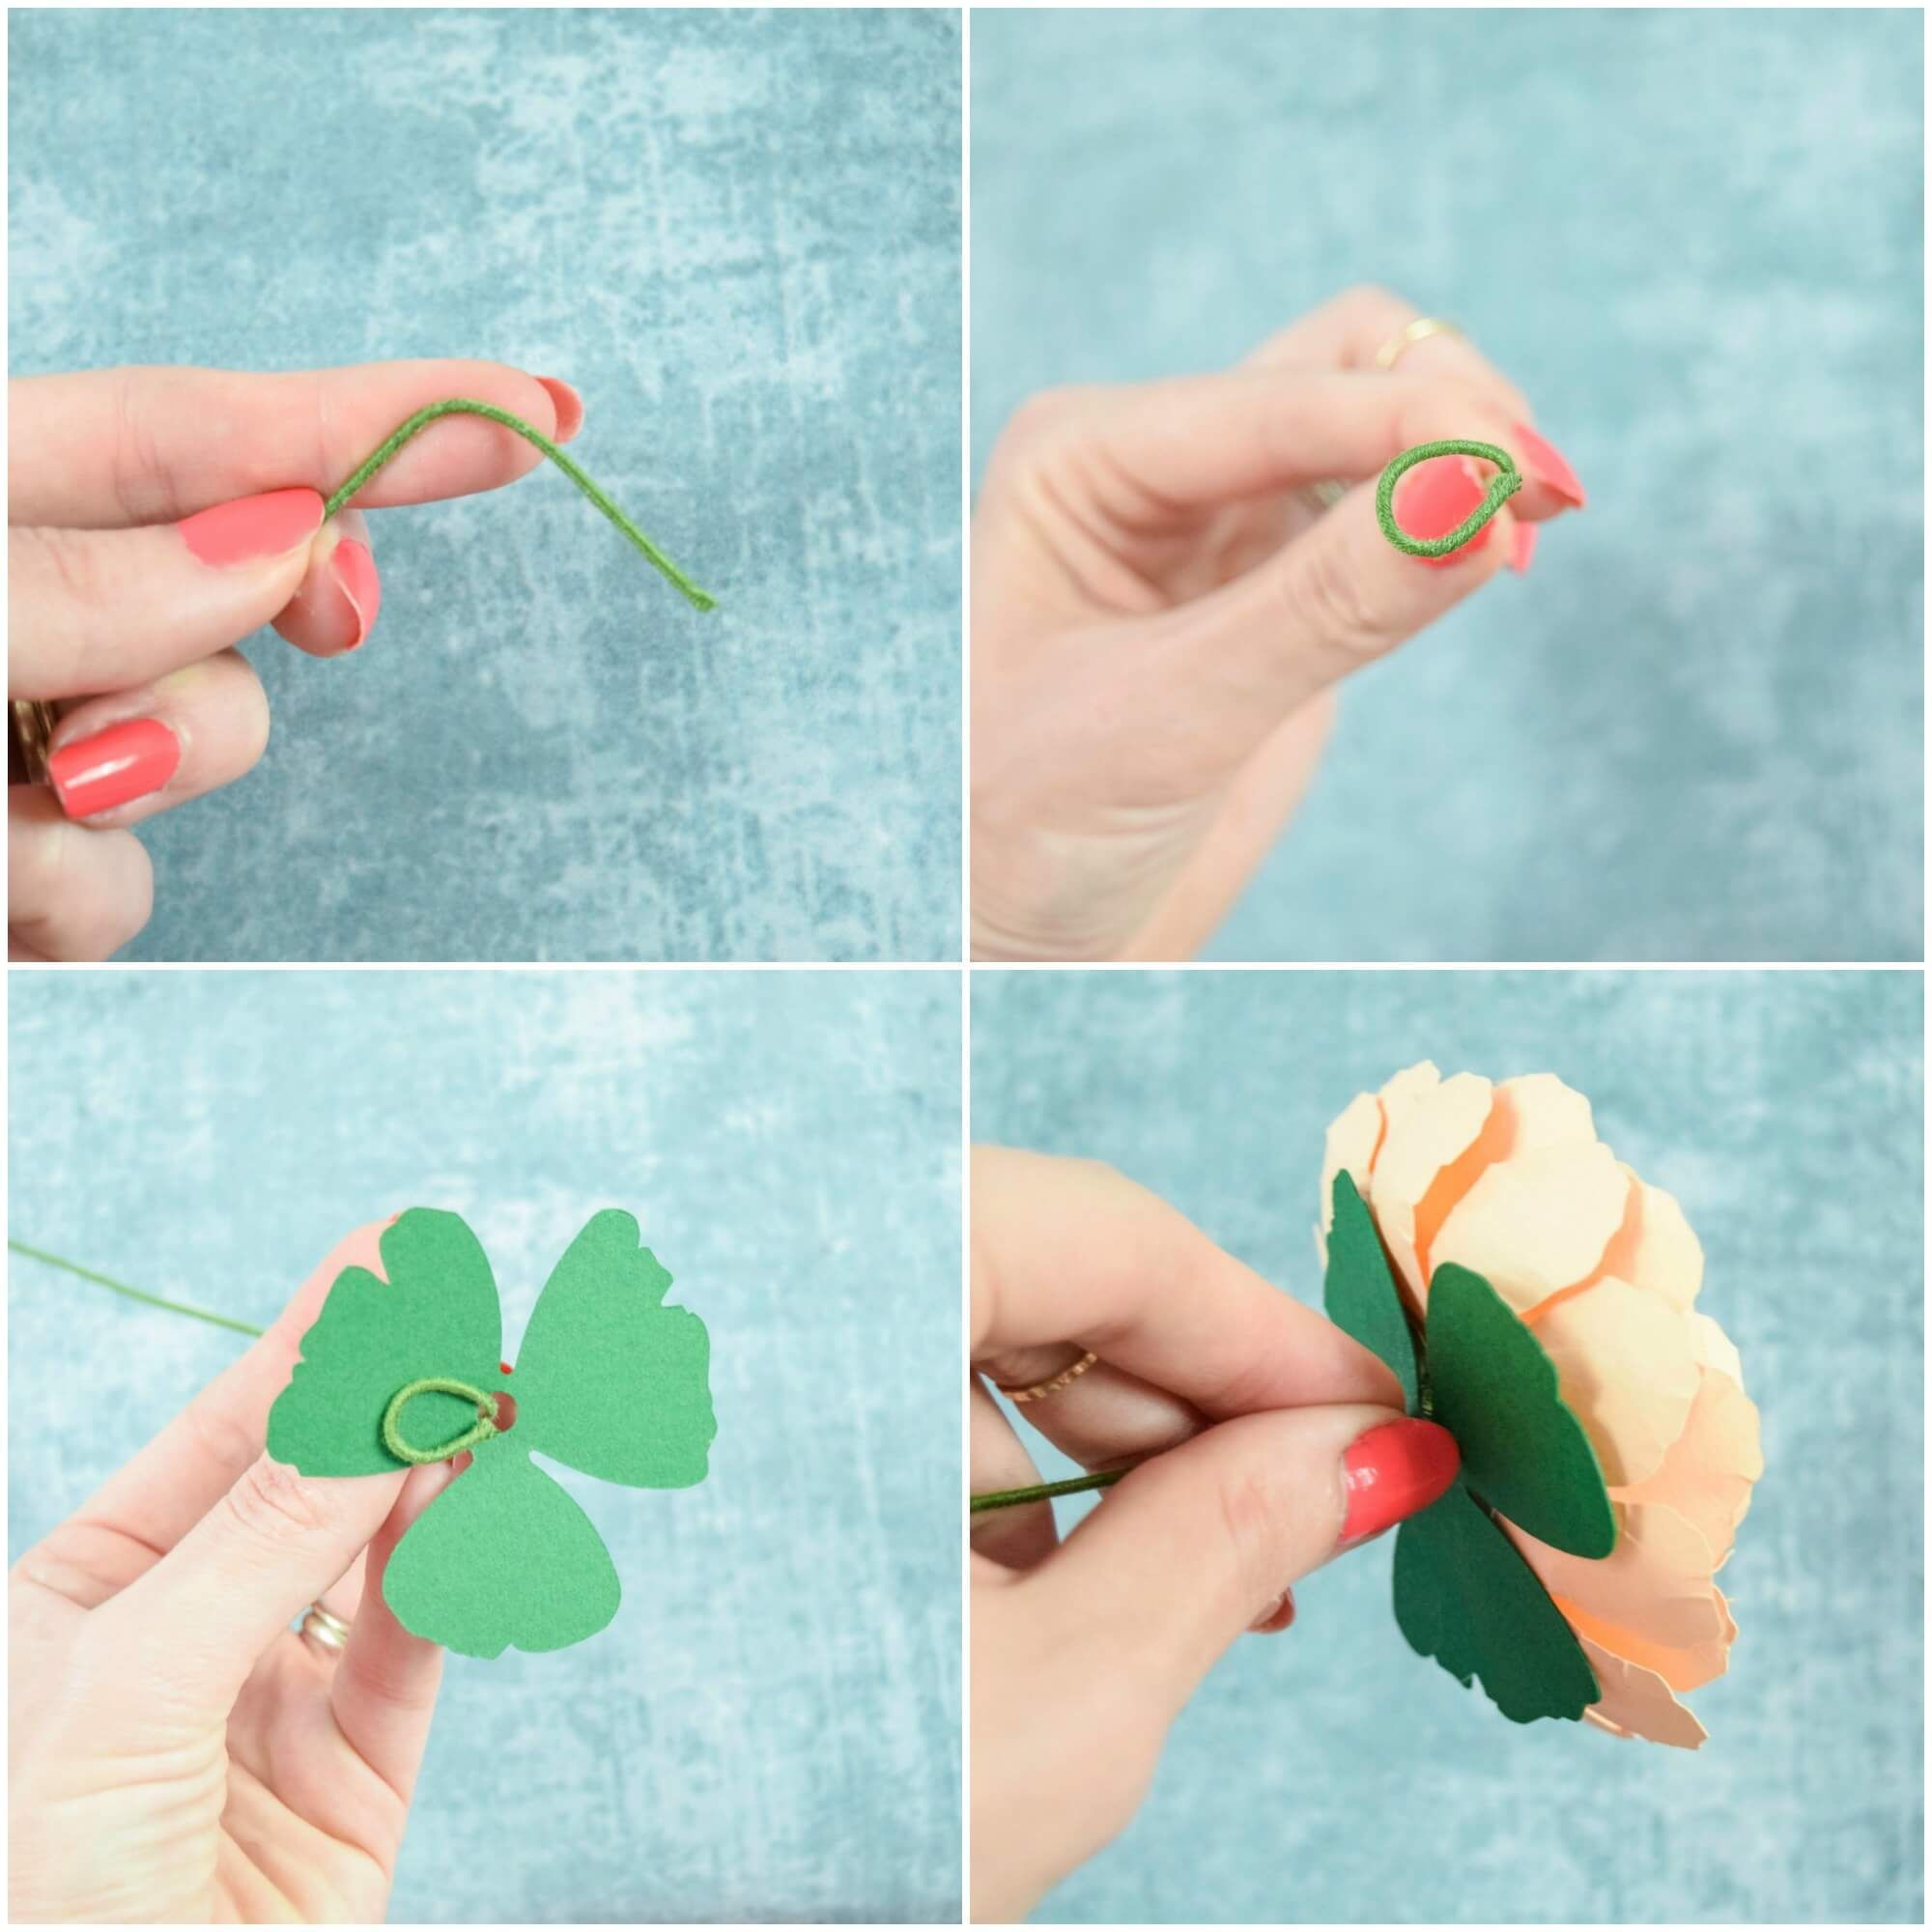 Peony paper flower template step by step easy paper flower tutorial peony paper flower template step by step easy paper flower tutorial mightylinksfo